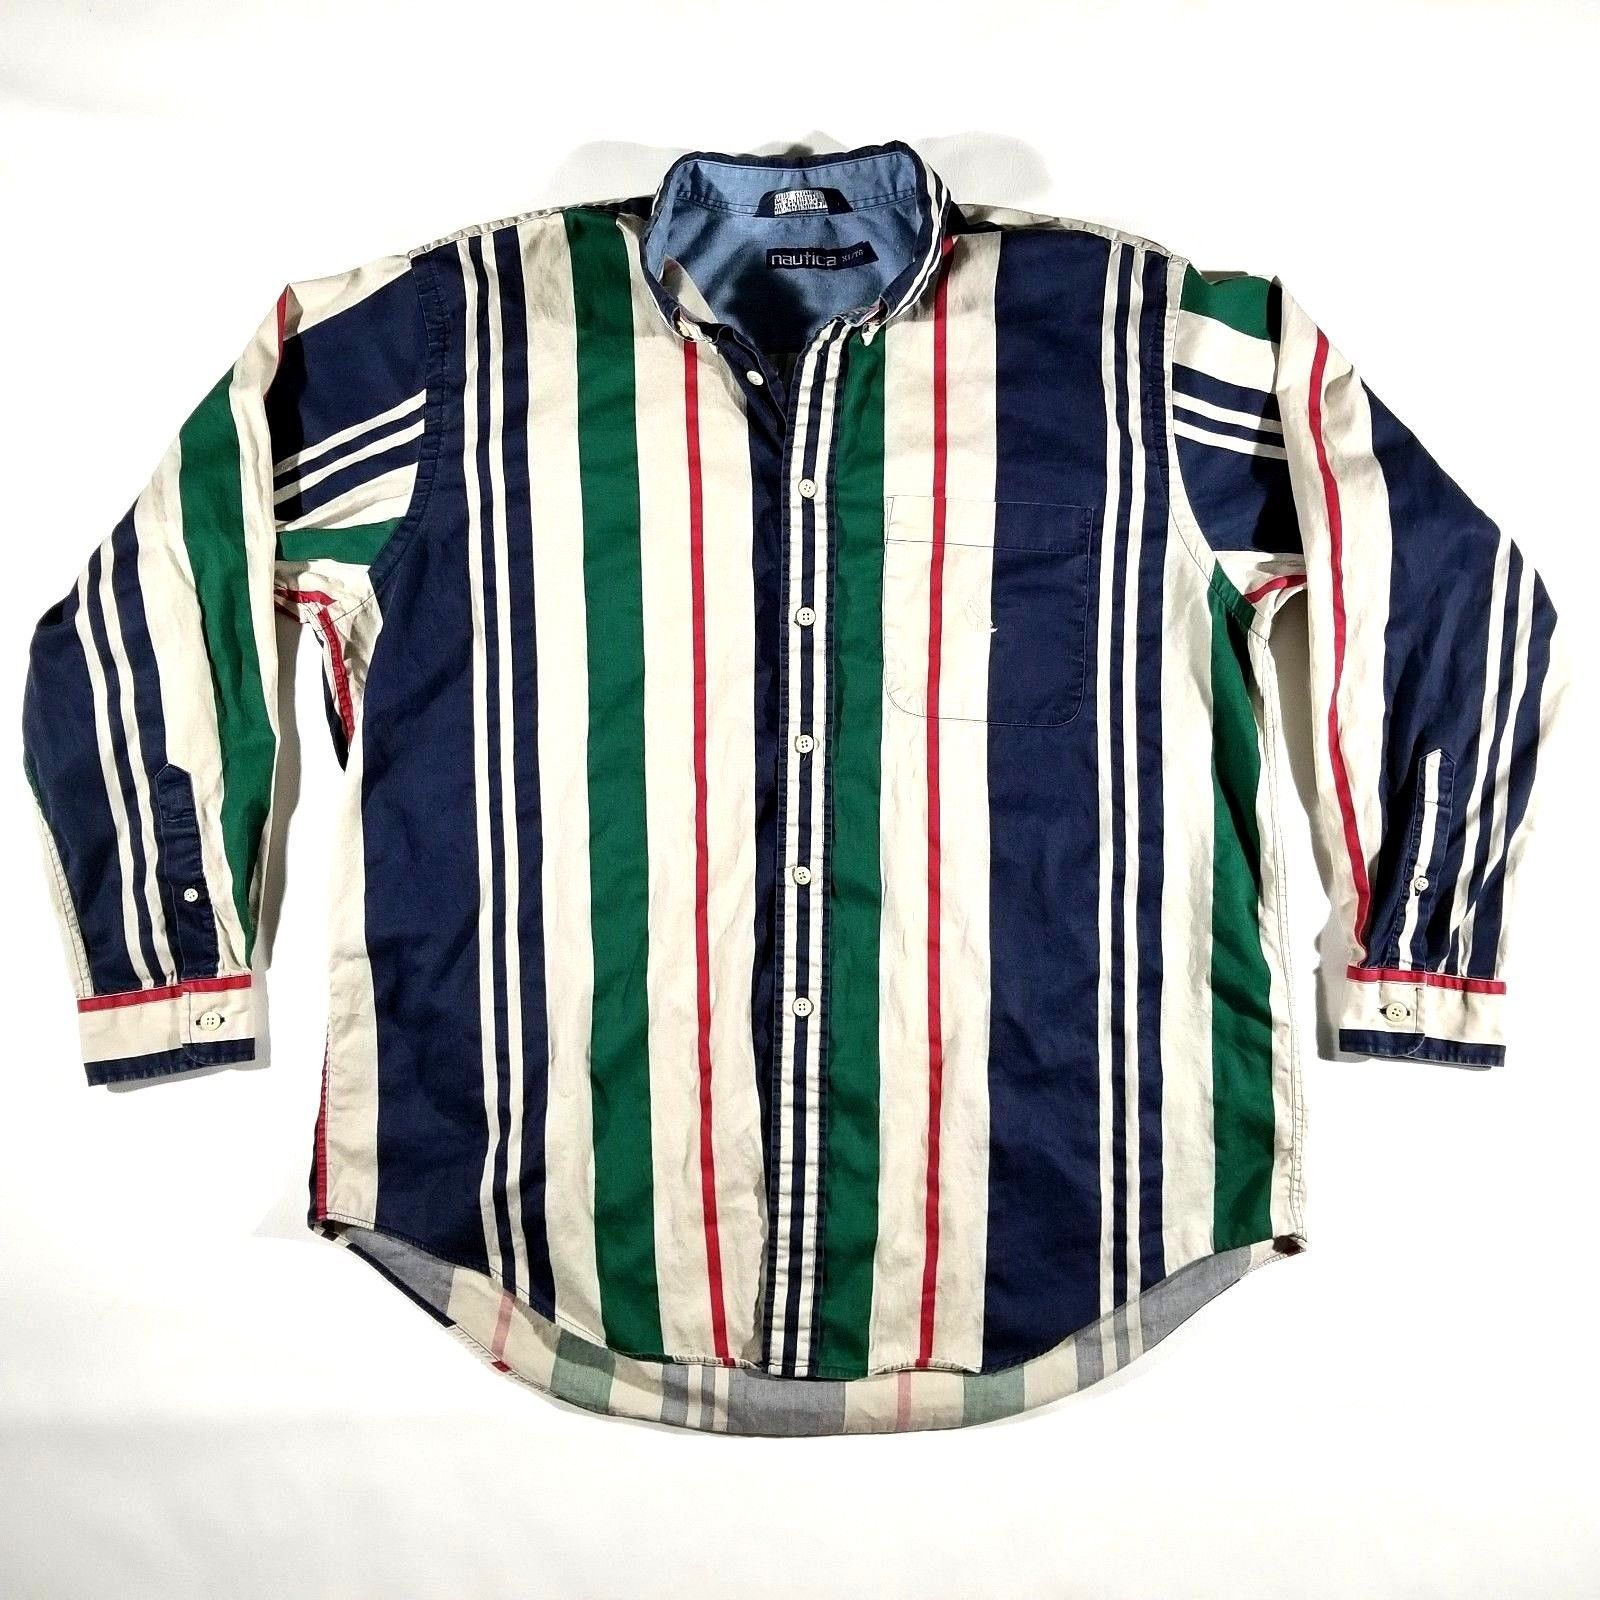 VTG Nautica Striped Dress Shirt Size XL Mens Long Sleeve Multicolor Made in USA